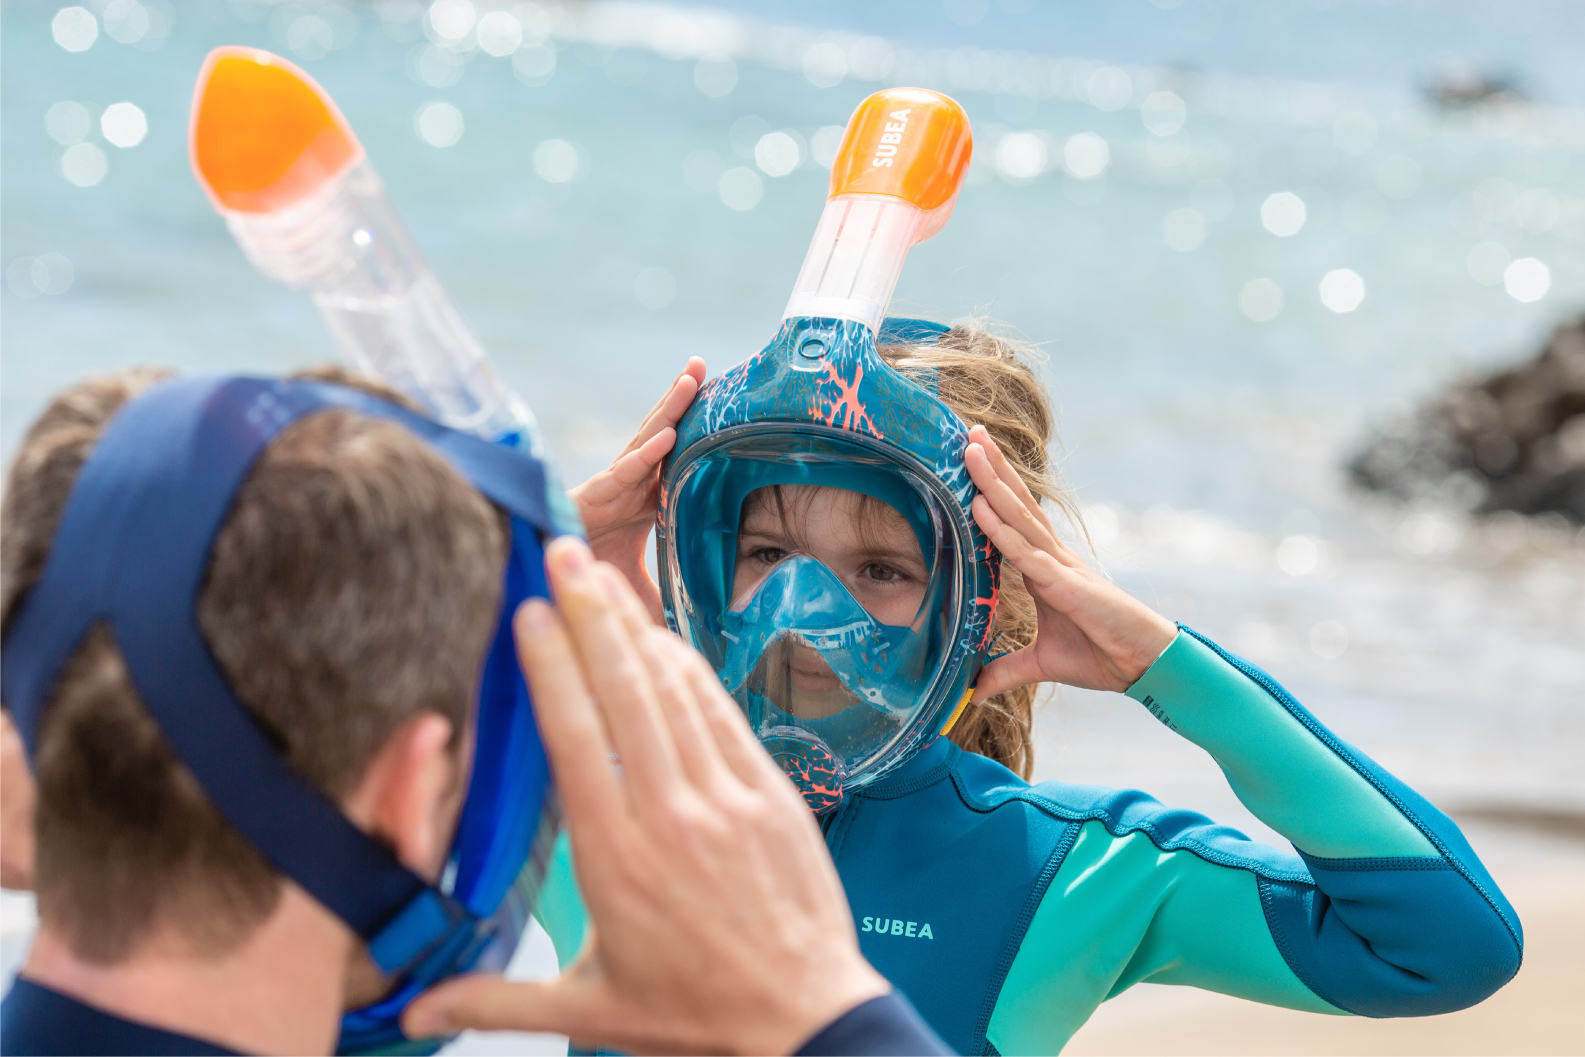 Decathlon's unique snorkeling mask. Easybreathe offering full panoramic view when snorkelling.